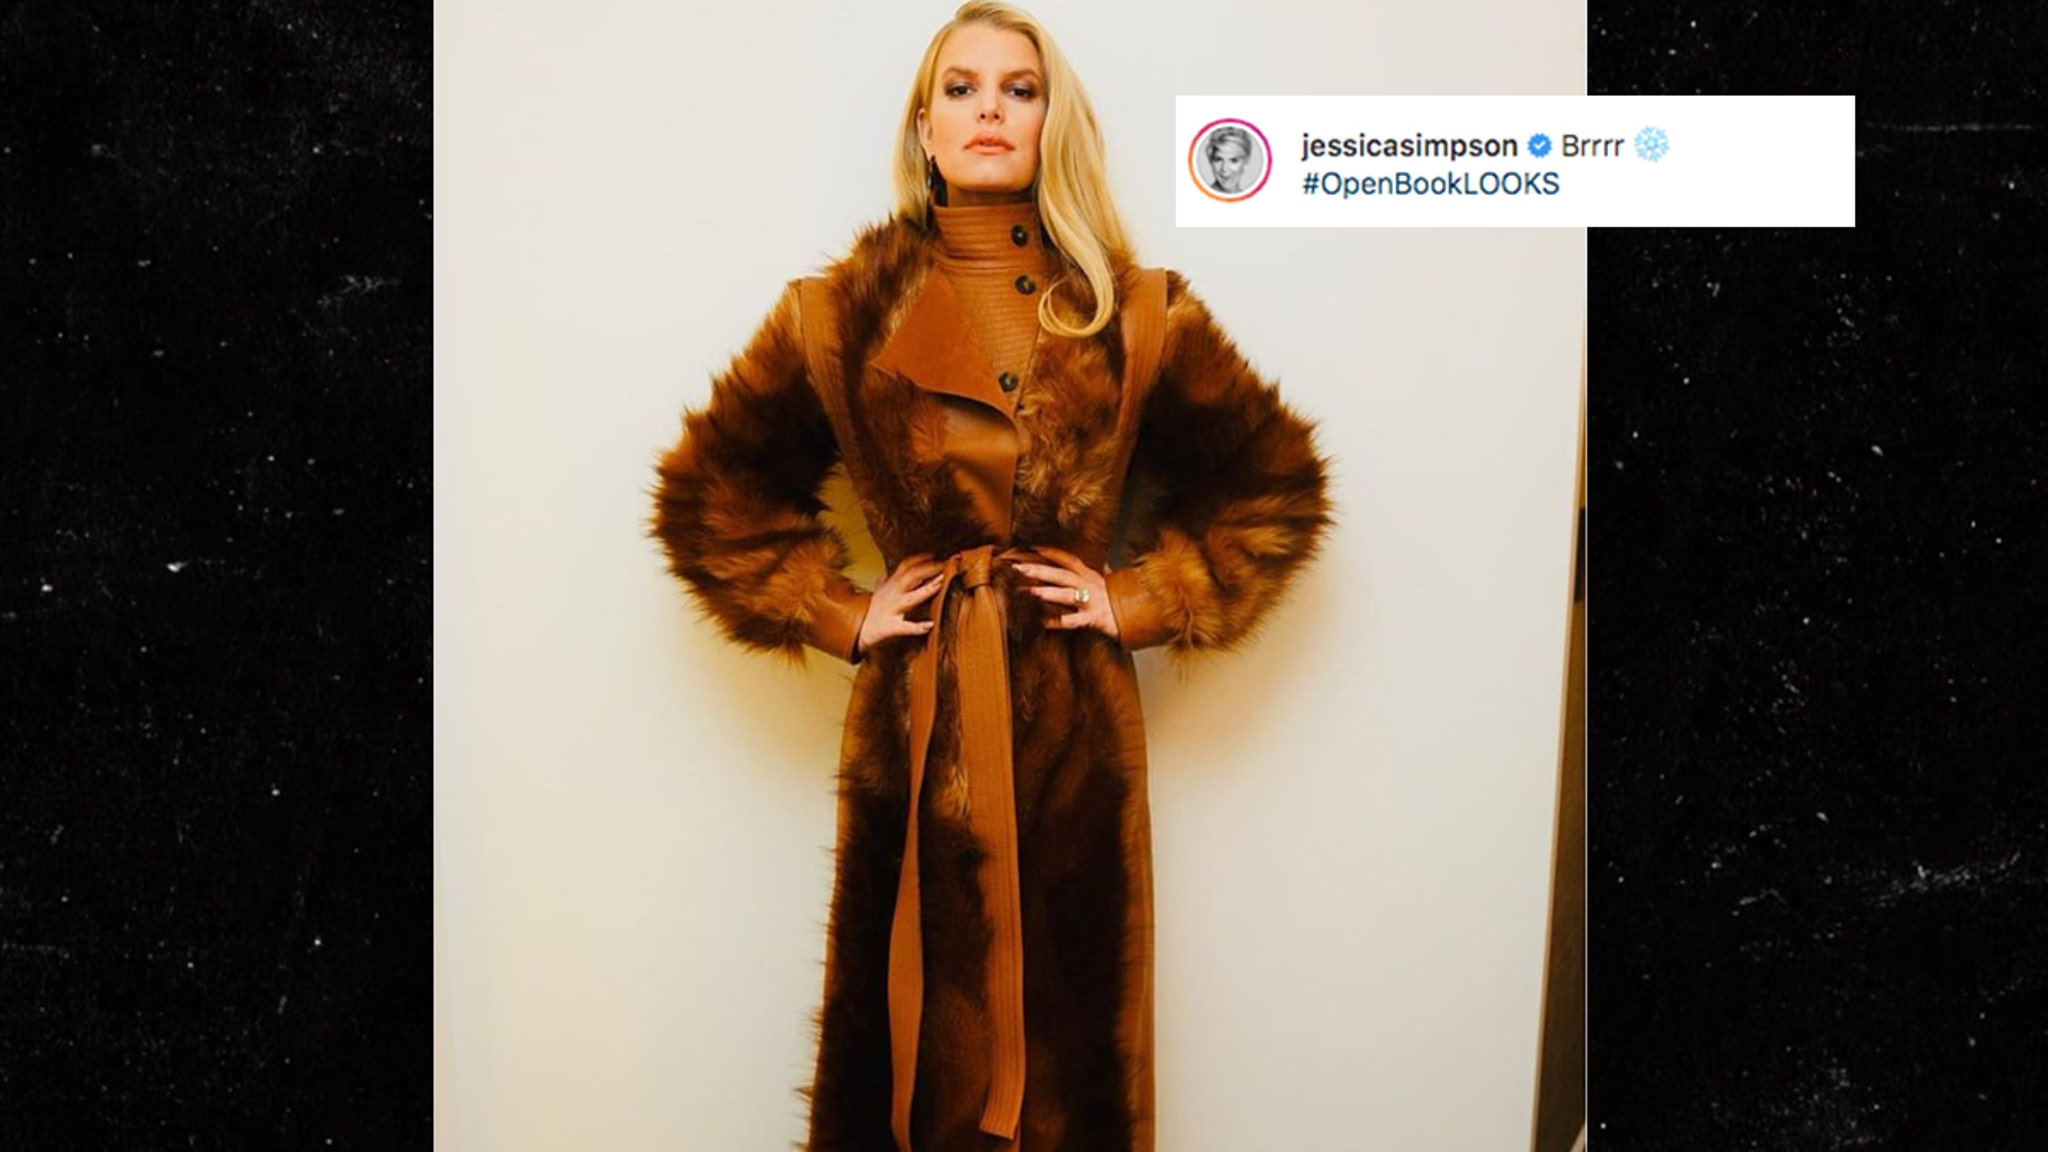 Jessica Simpson Wears Faux-Fur Coat on Book Tour on Heels of Protests